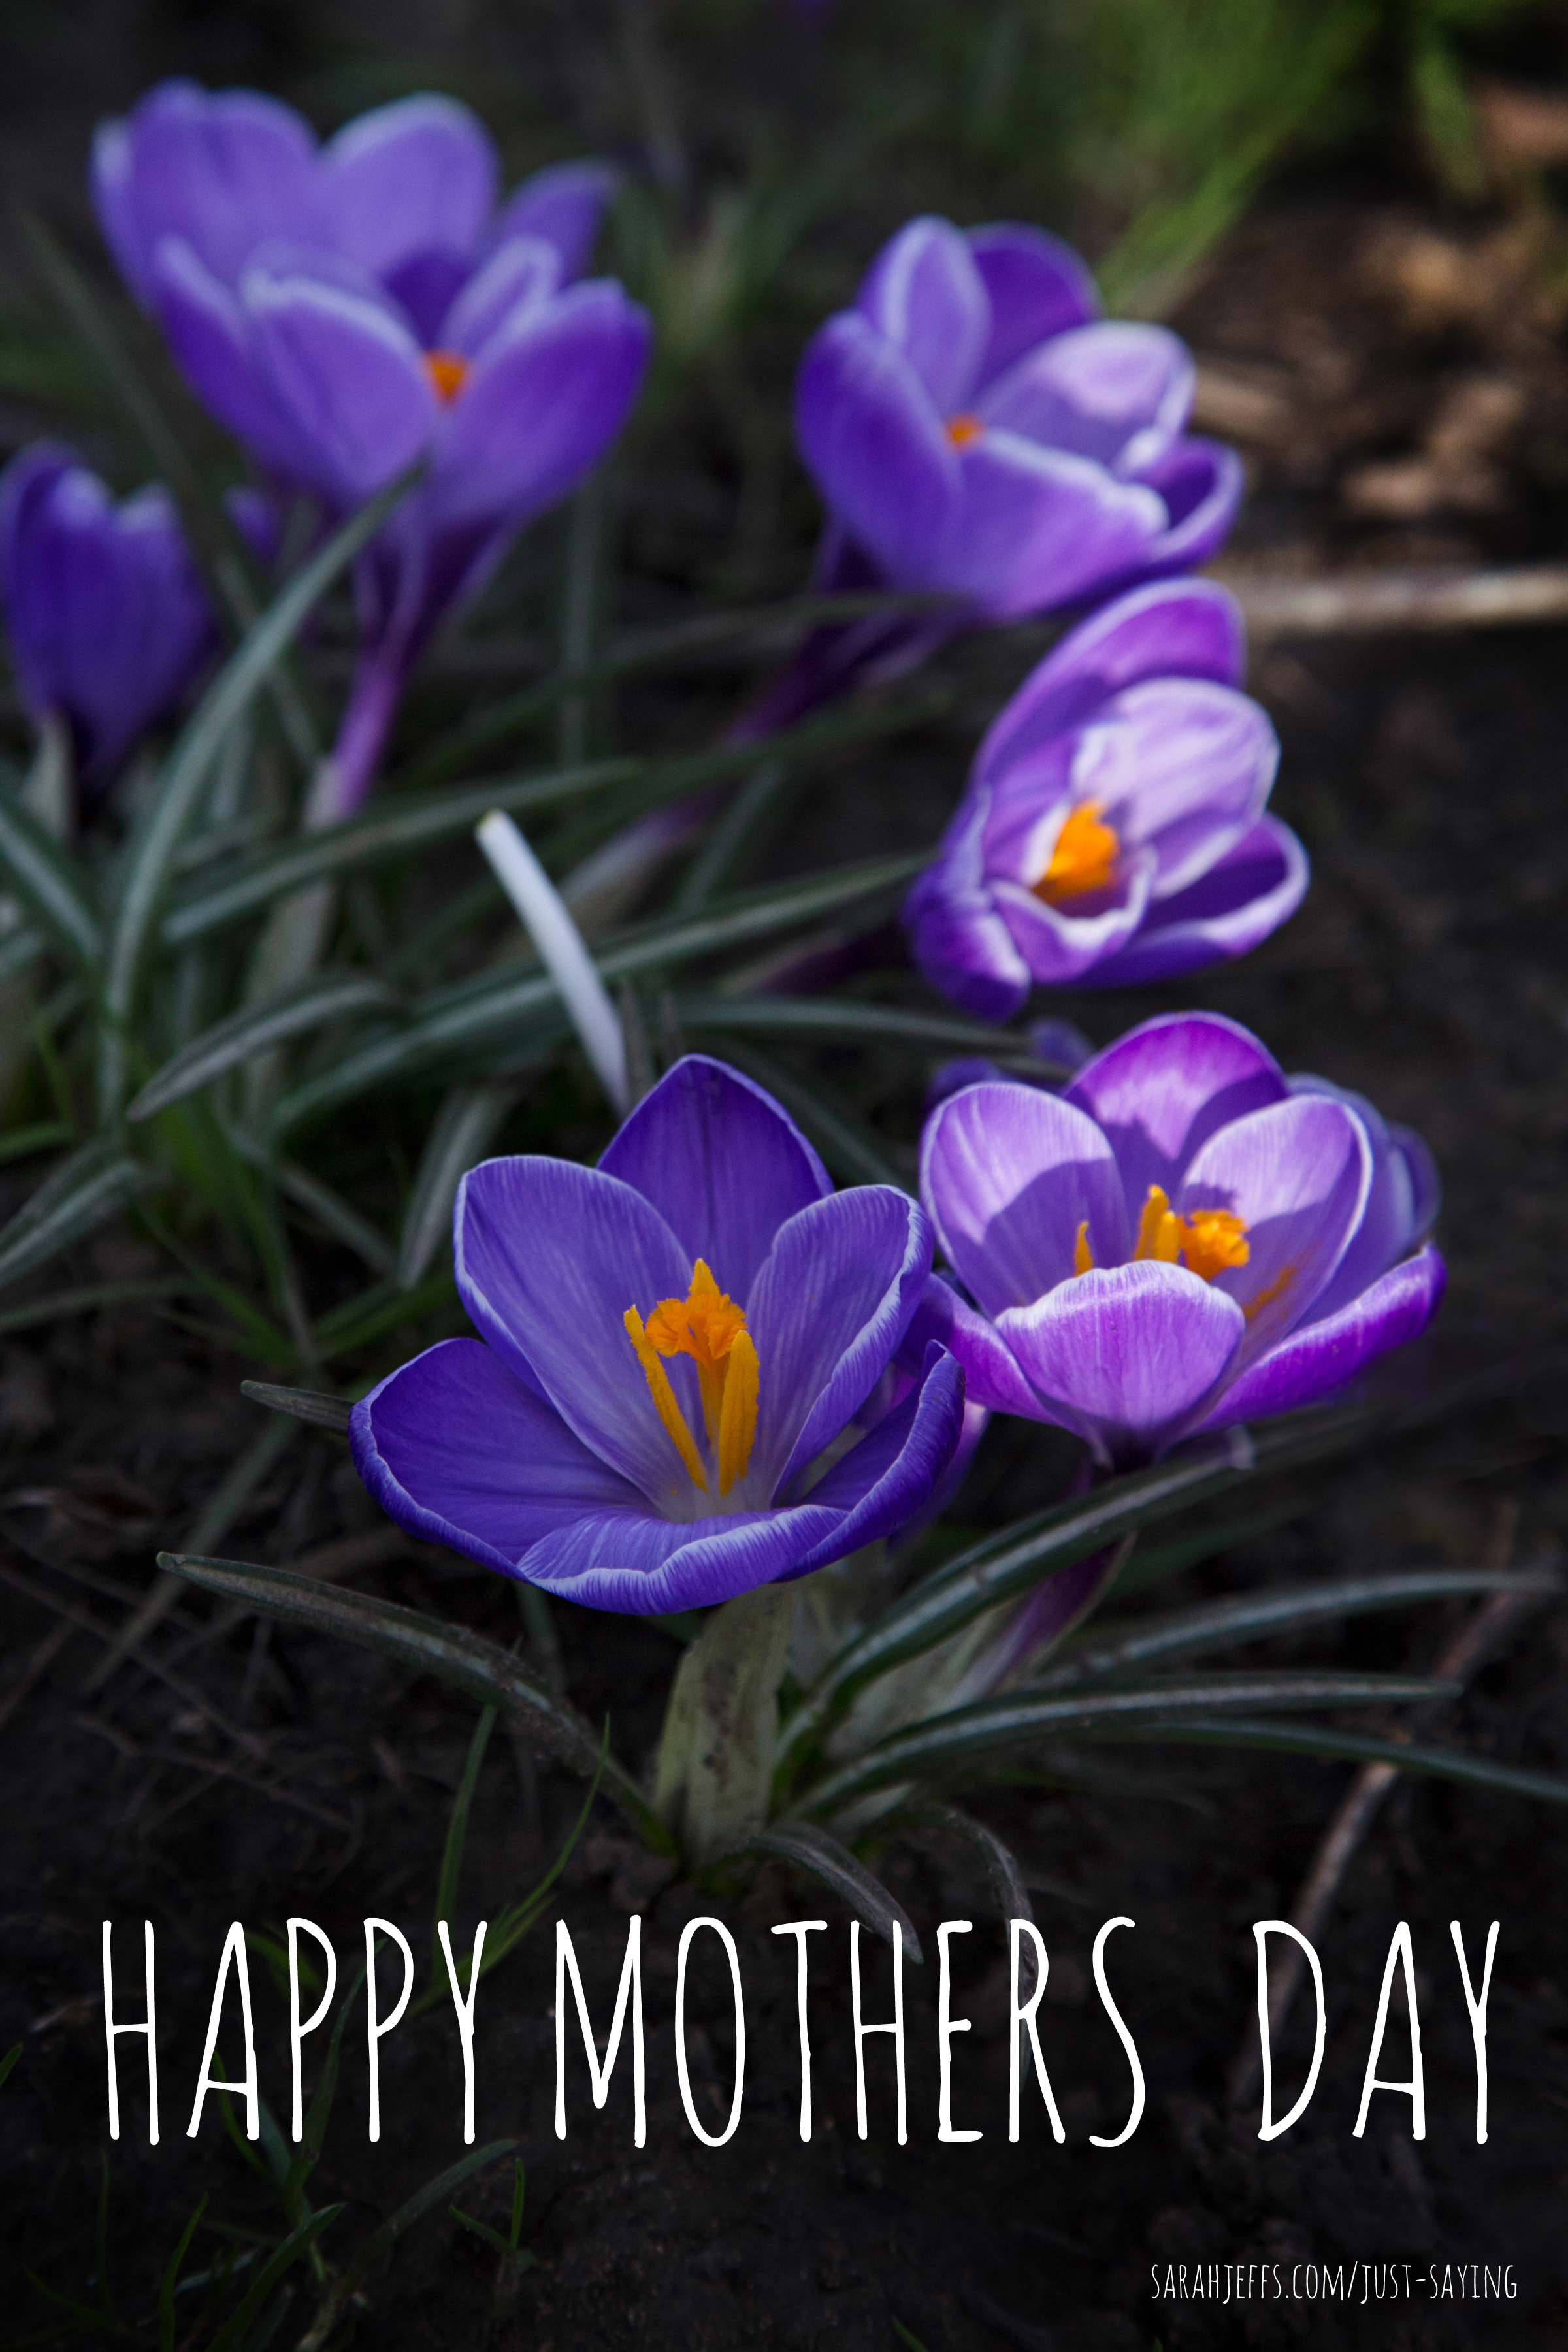 HAPPY-MOTHERS-DAY-2.jpg